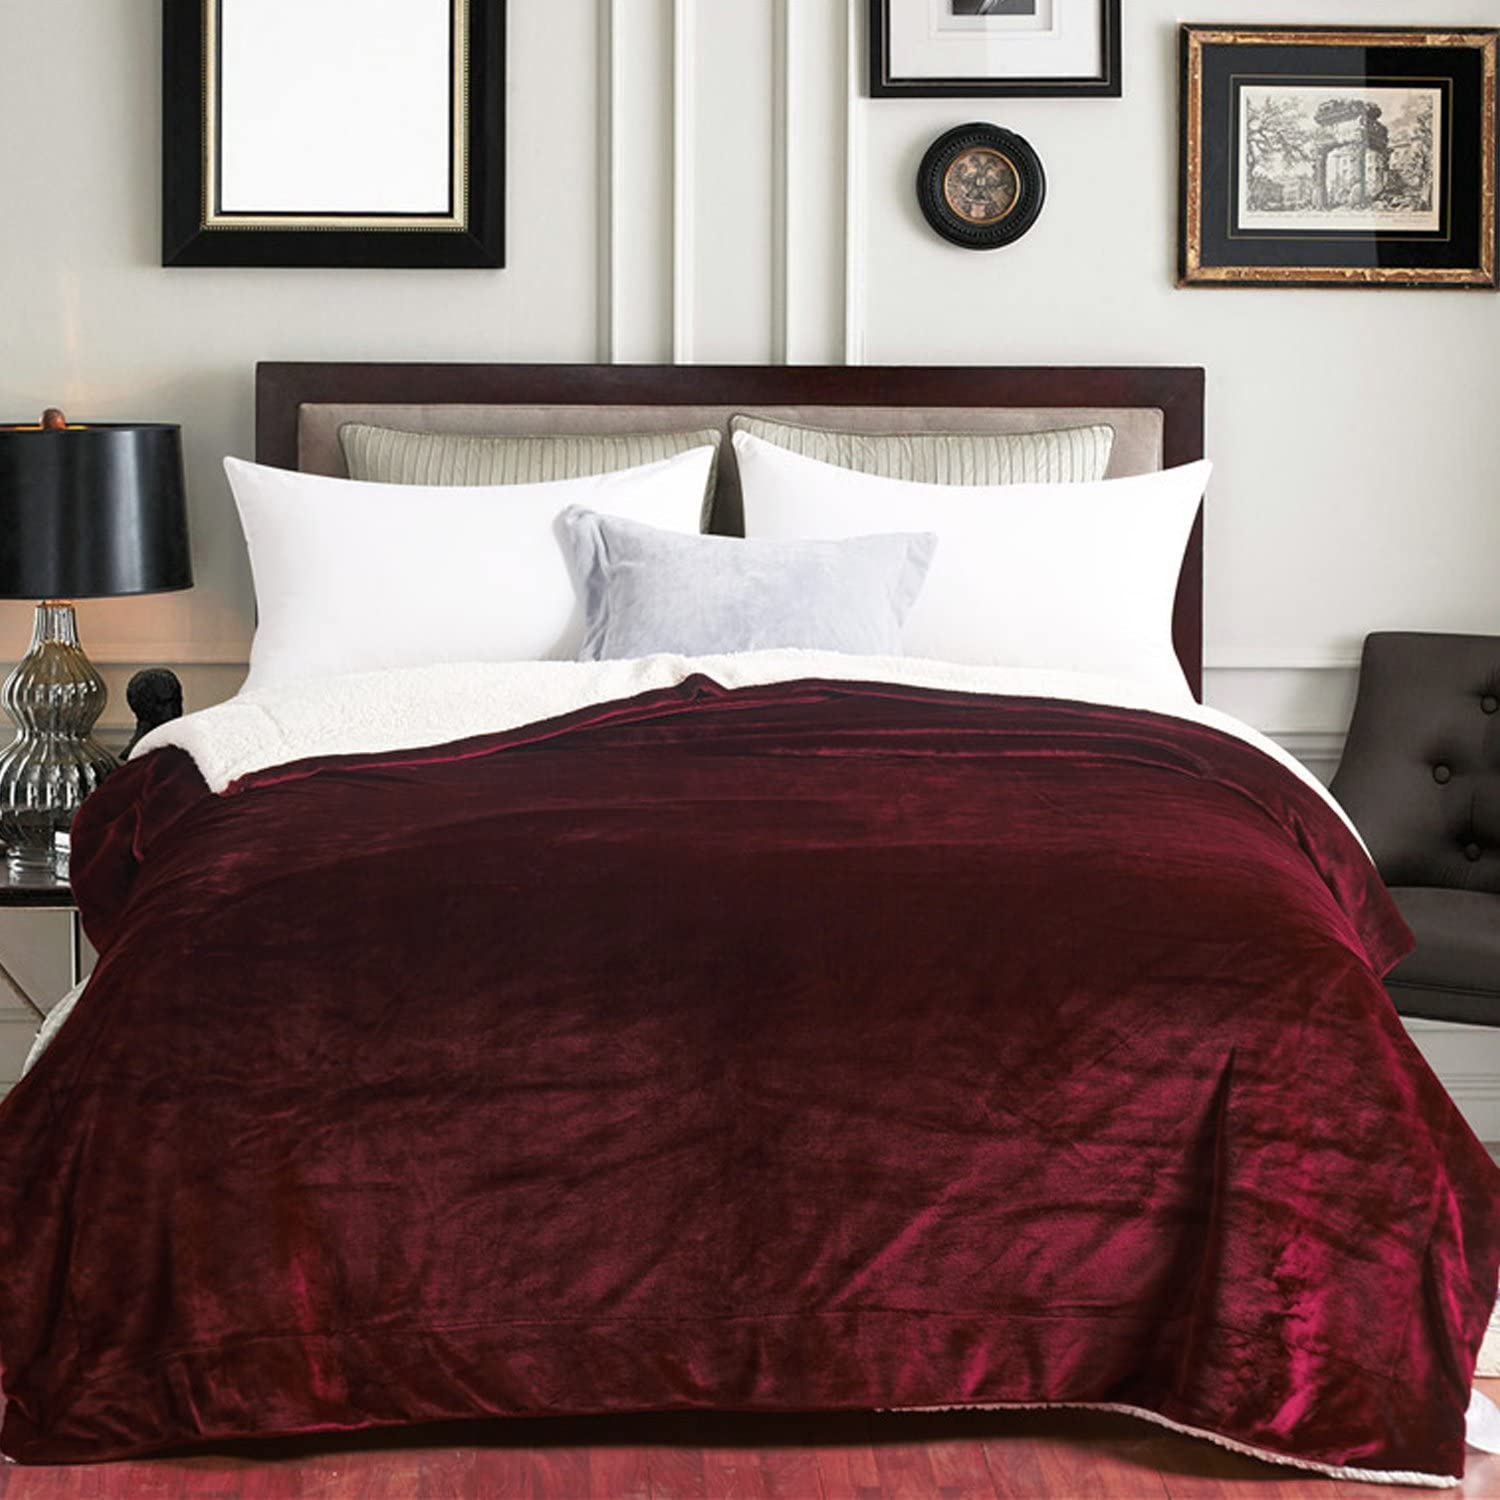 Sherpa Blankets Queen Size Bed Double Fleece Plush Fuzzy Reversible - Maroon